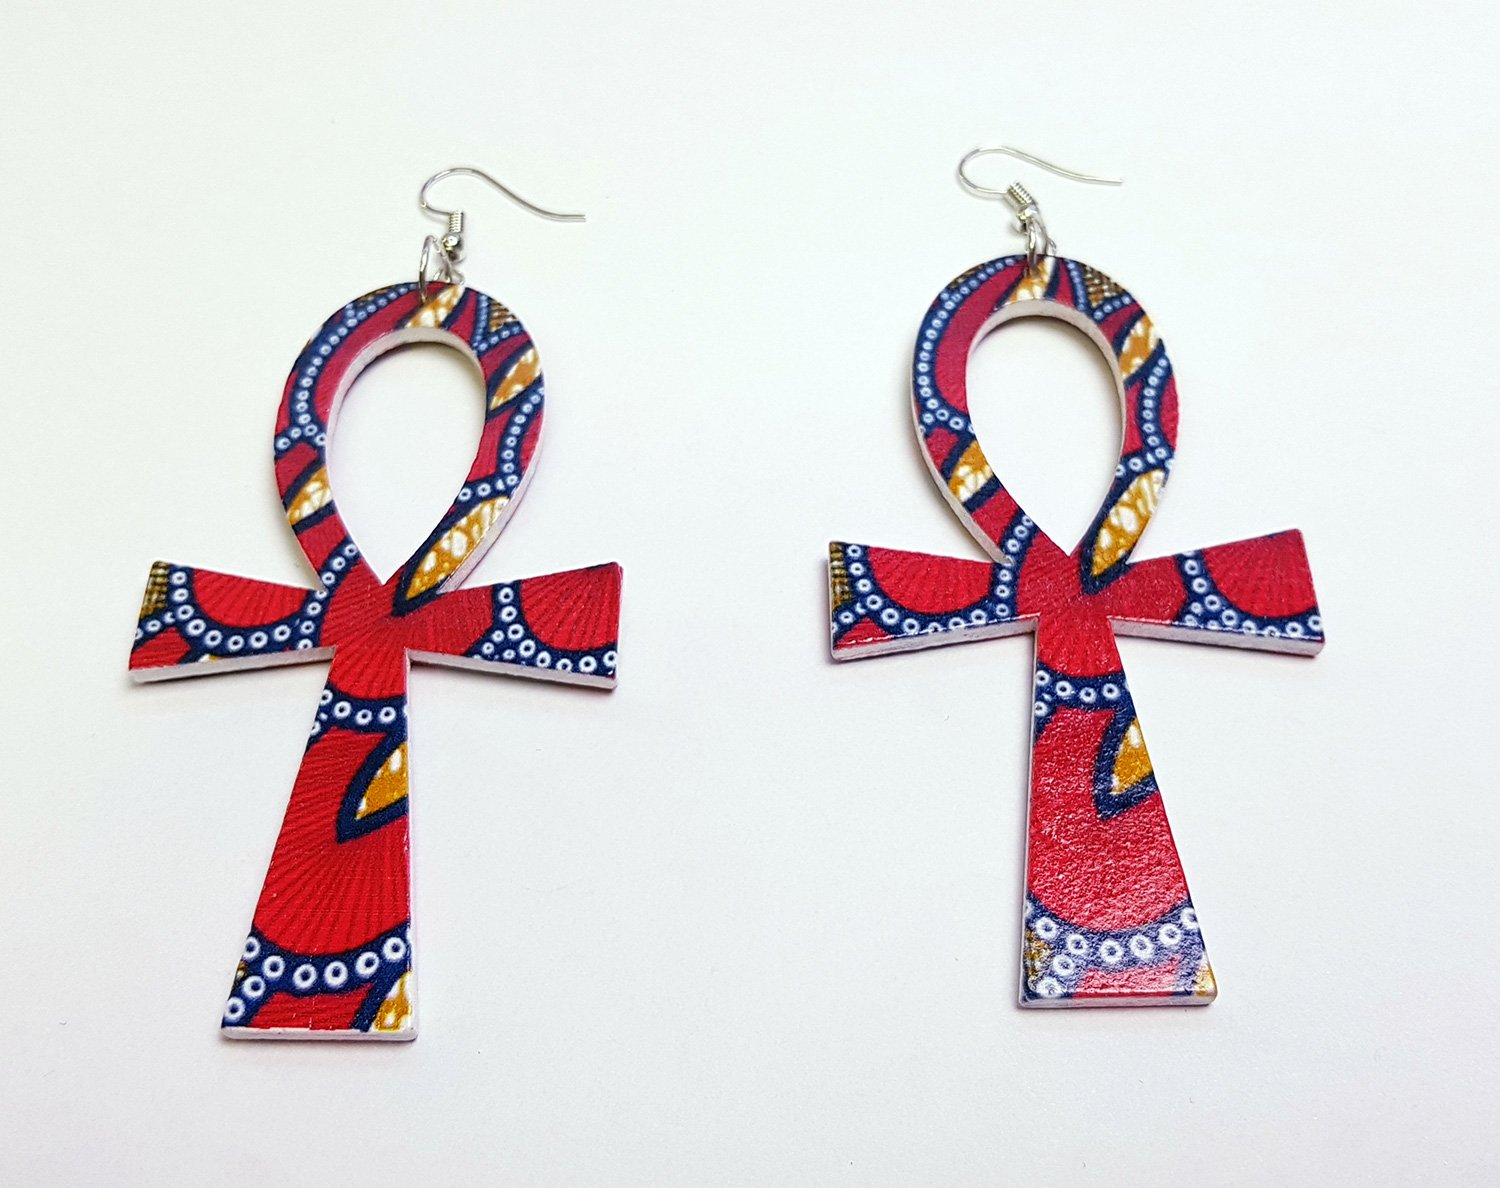 Ankh shaped wooden African Earrings with Print - Red